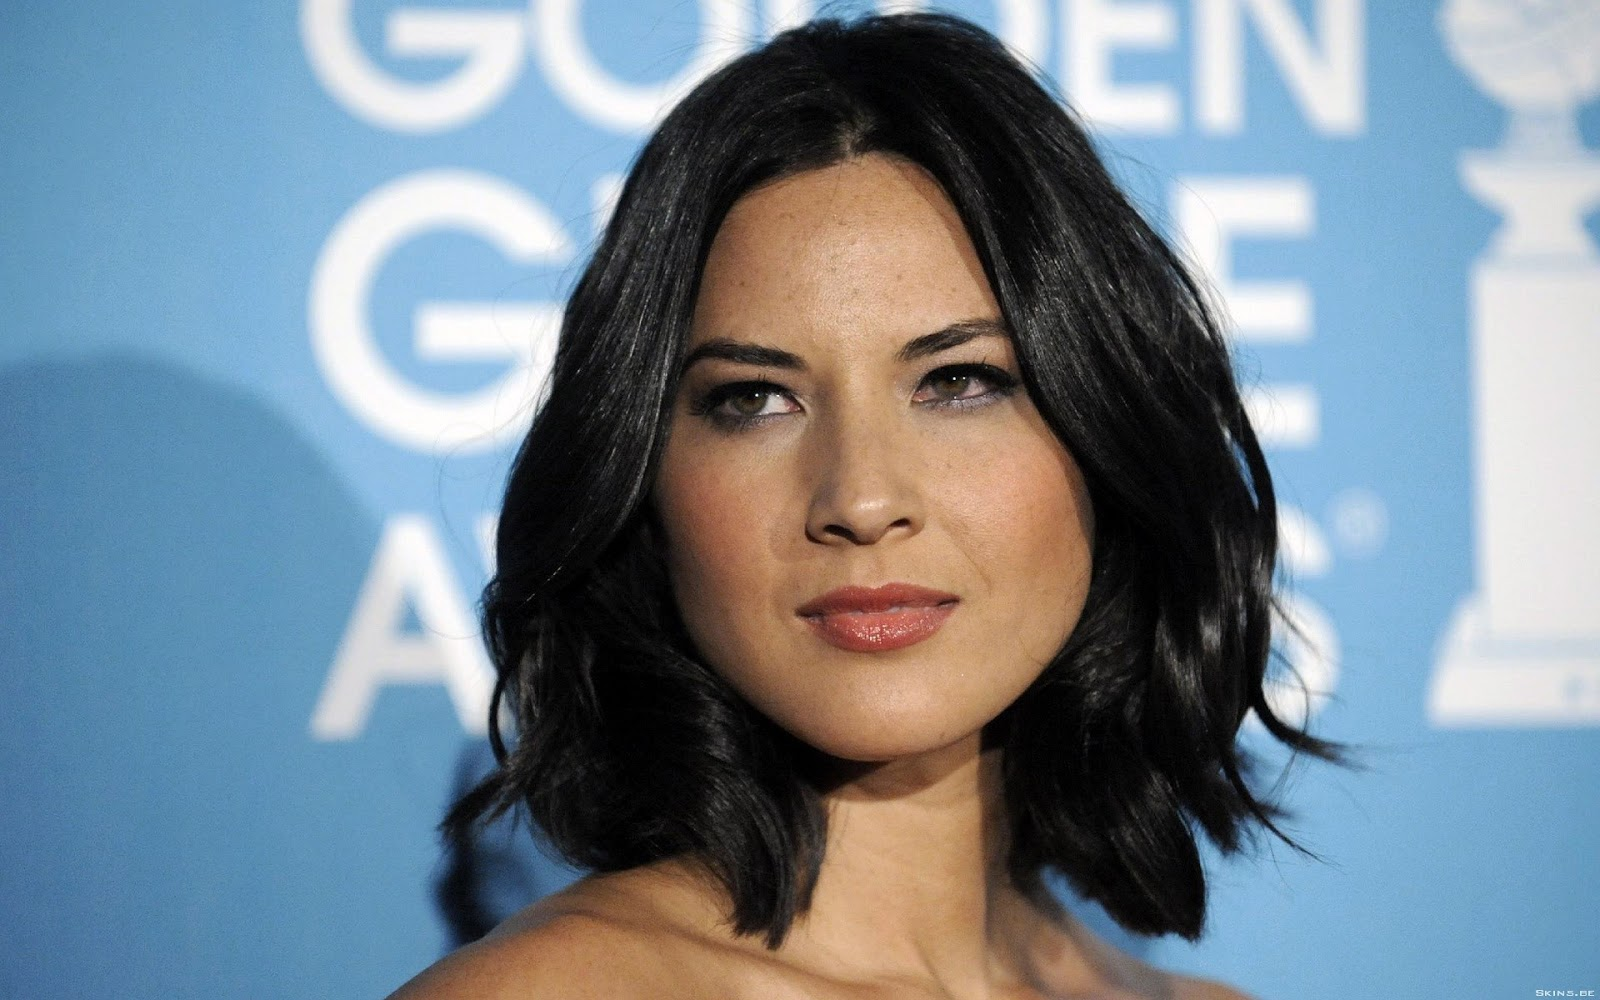 olivia munn30 1920x1080 wallpapers - photo #18